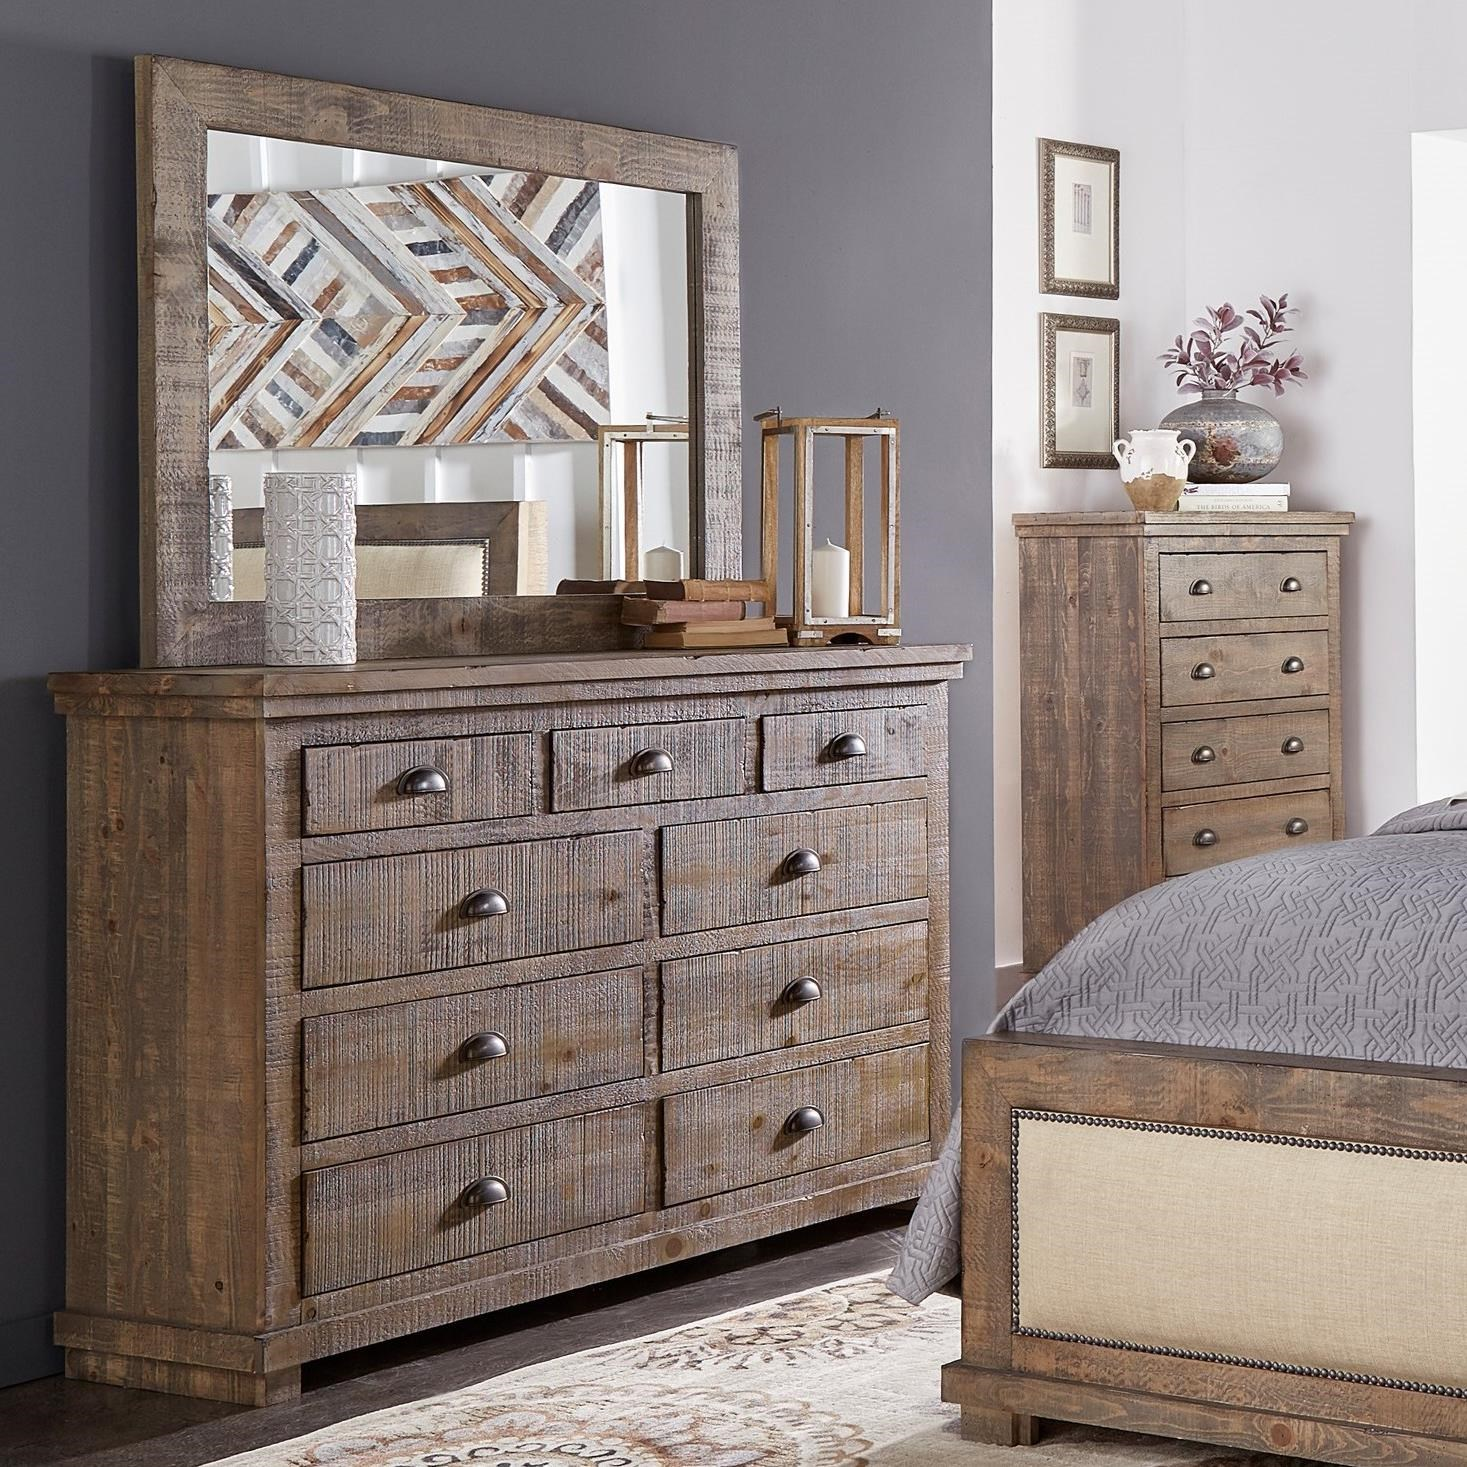 Willow Drawer Dresser & Mirror by Progressive Furniture at Lindy's Furniture Company